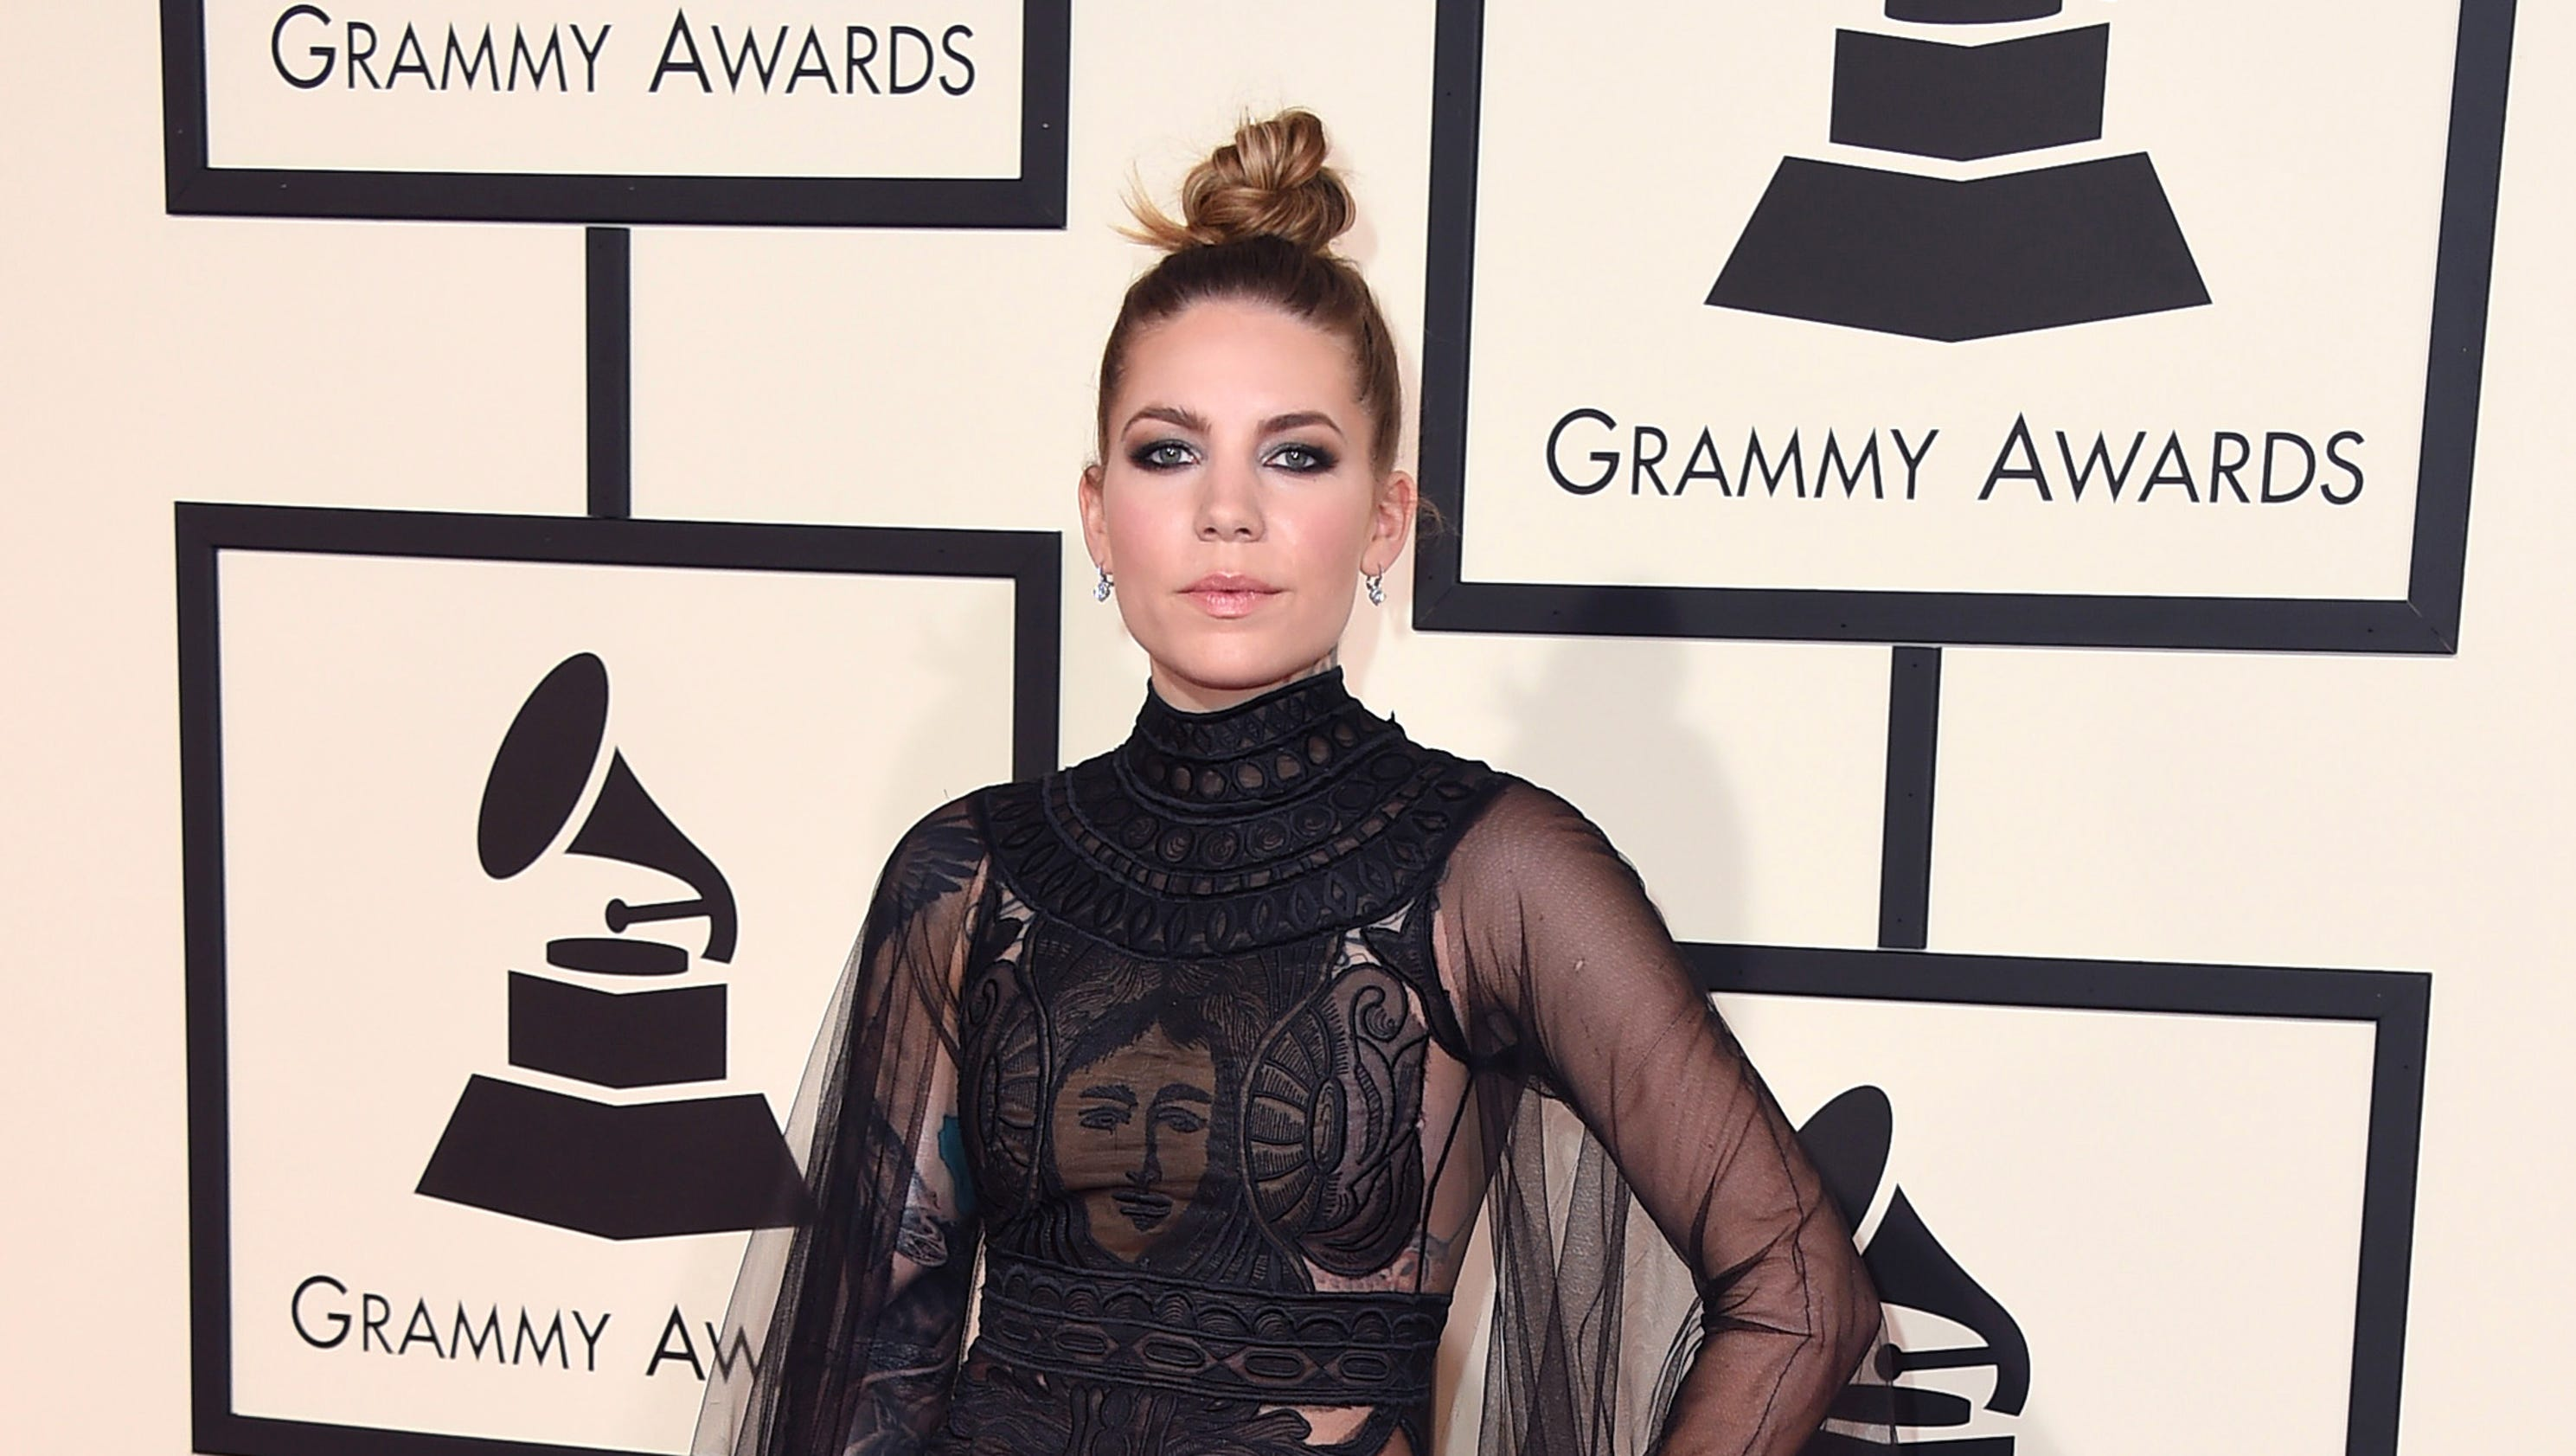 Grammys: The Worst Dressed At The Grammys